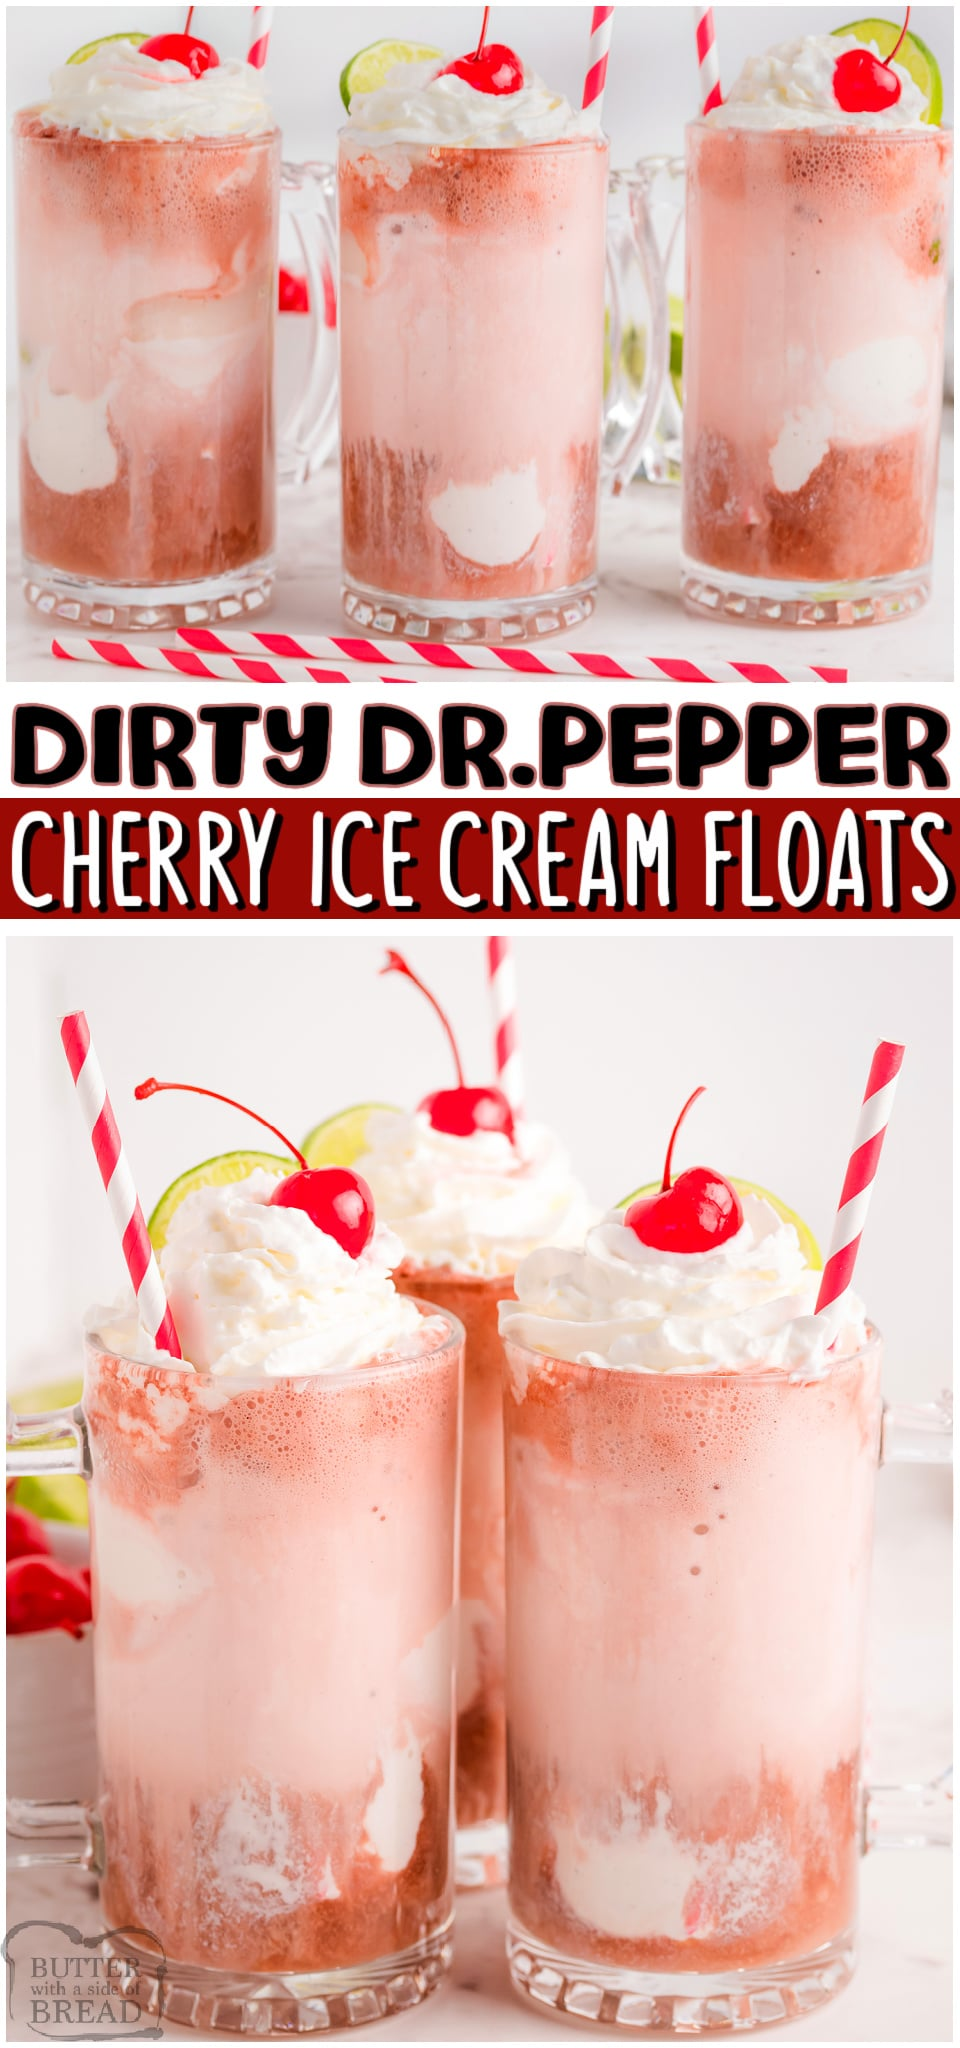 Dirty Cherry Dr. Pepper Floats made with Cherry Dr.Pepper soda, coconut & lime, then topped with ice cream & a cherry! Simple Dr.Pepper Float recipe with a fun twist!  #DRPEPPER #icecream #floats #dirtyDP #coconut #lime #nonalcoholic #beverage #easyrecipe from BUTTER WITH A SIDE OF BREAD